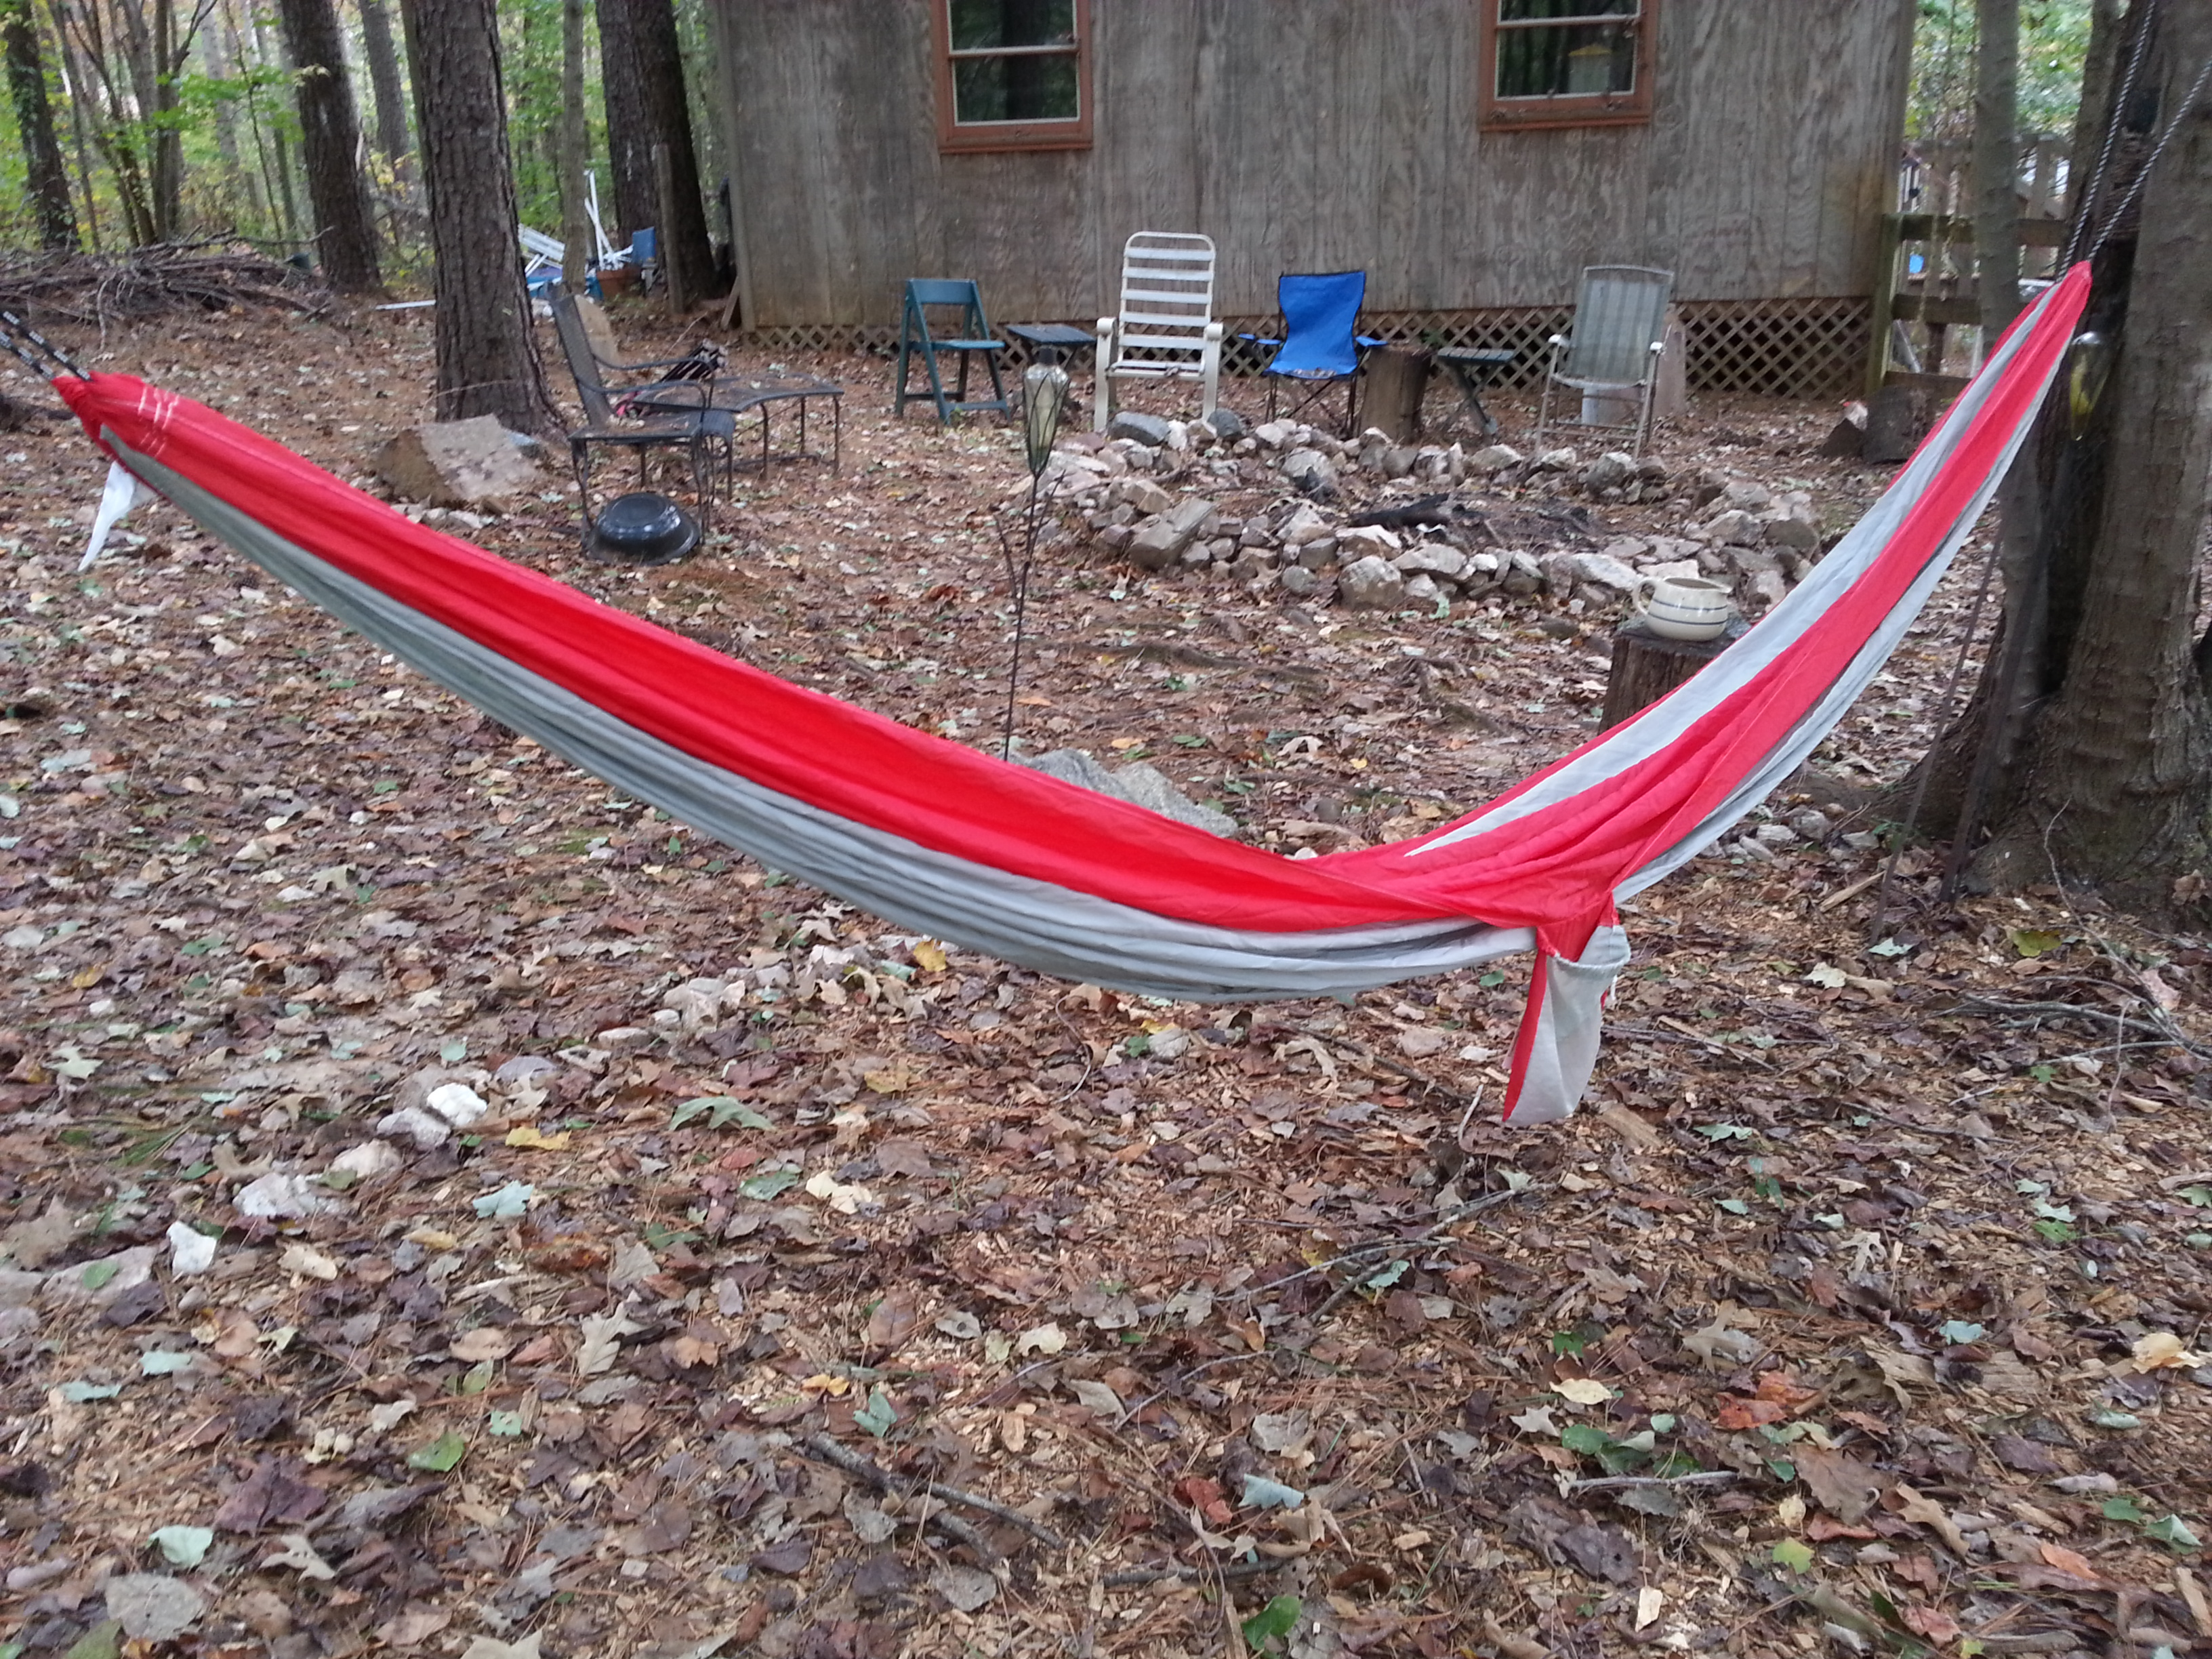 byer of maine hammock 002 traveler xxl double hammock gear review   outdoortrailgear hammock      rh   outdoortrailgear